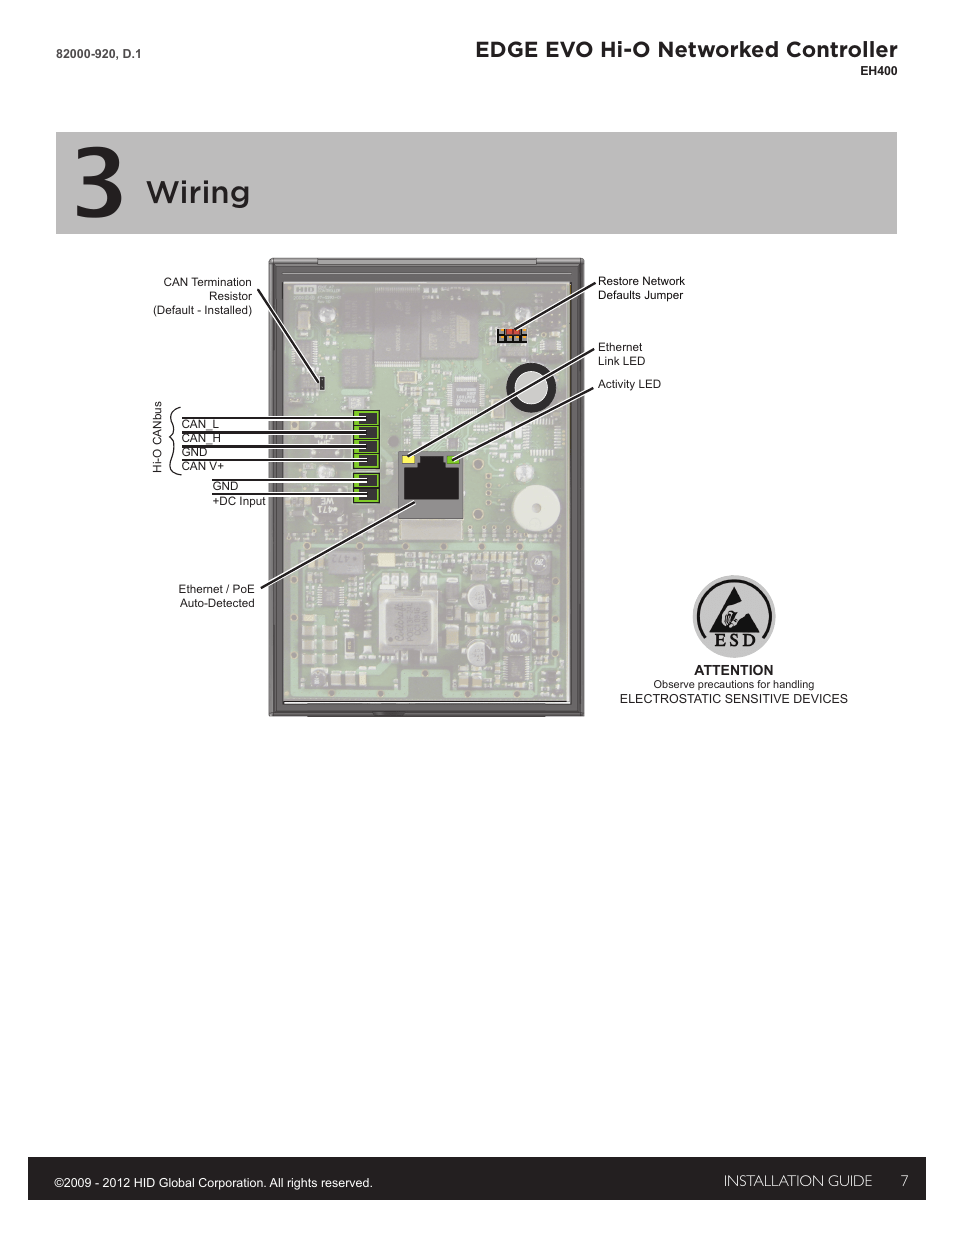 hight resolution of 3 wiring wiring edge evo hi o networked controller hid edge3 wiring wiring